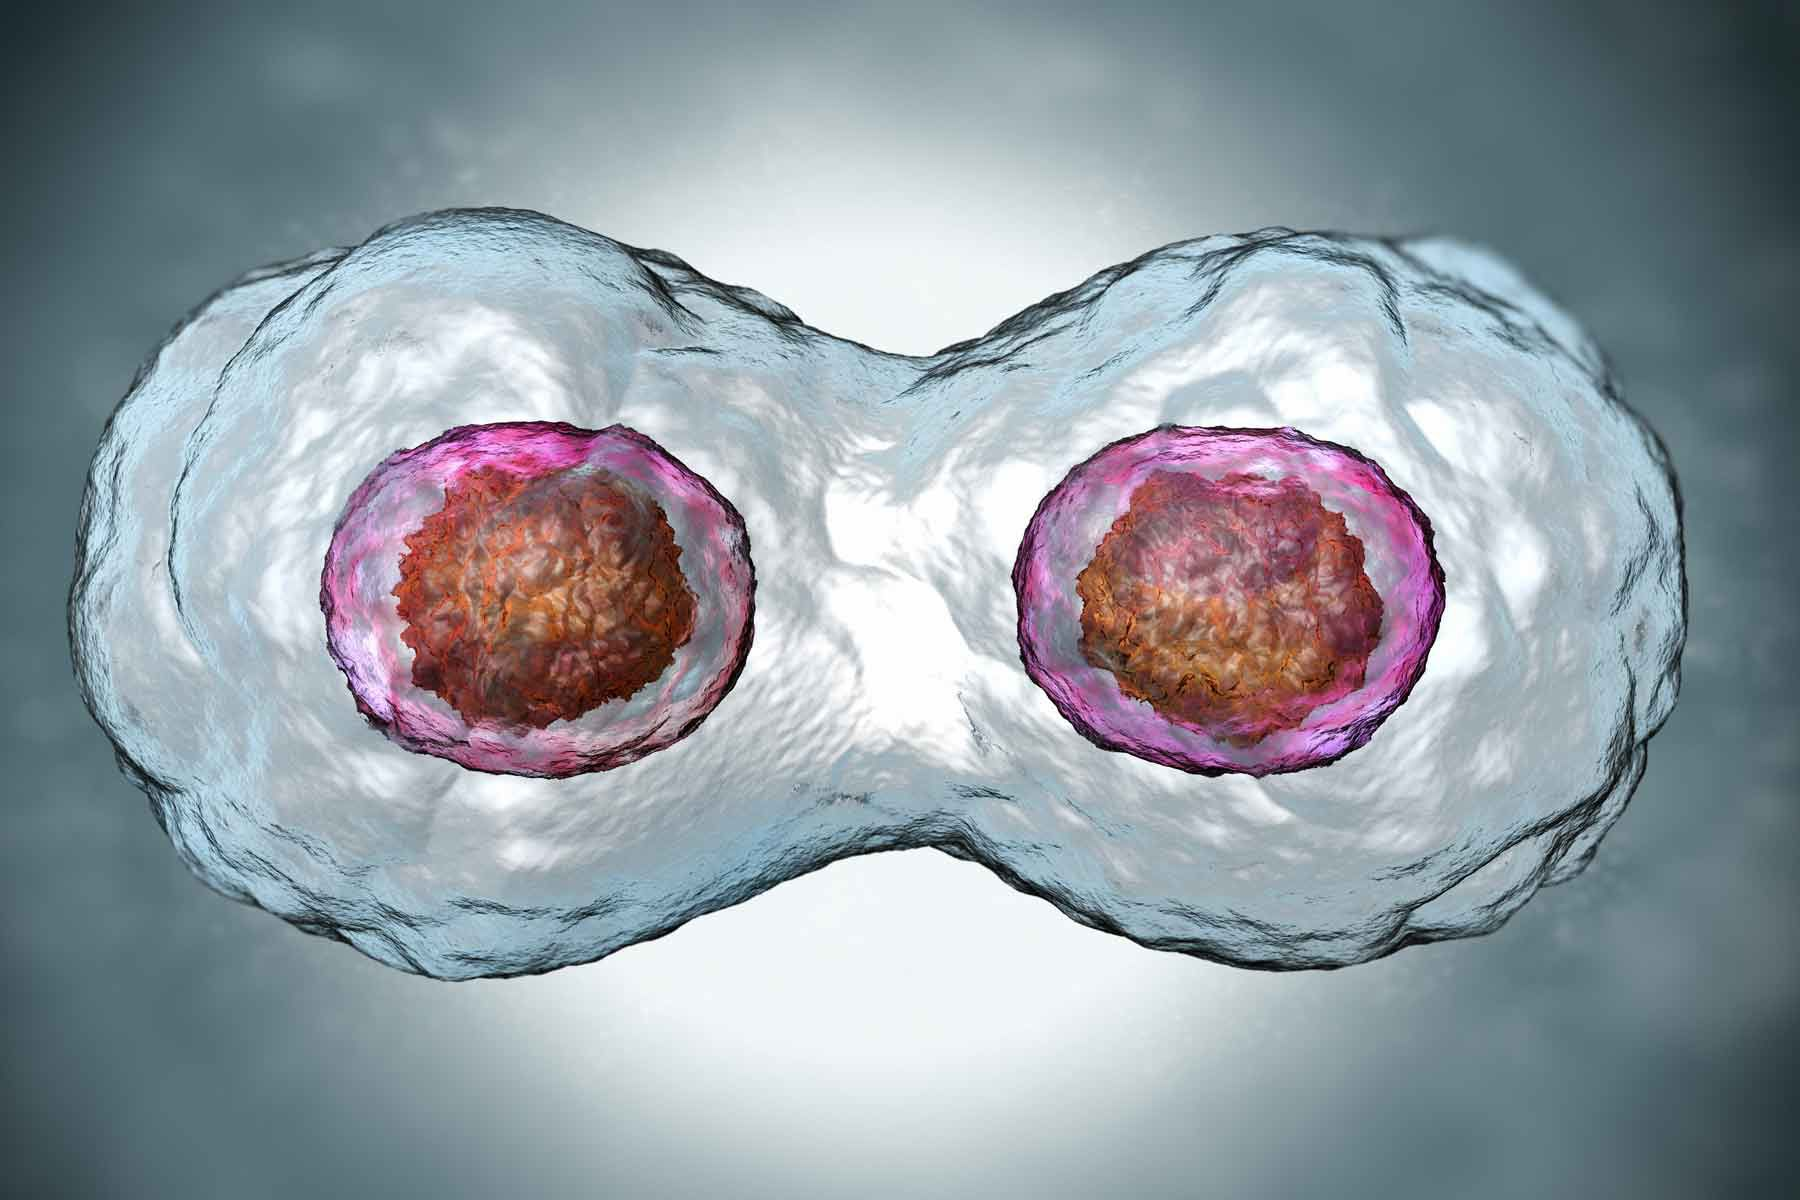 A zygote undergoing Mitosis, or cell division.